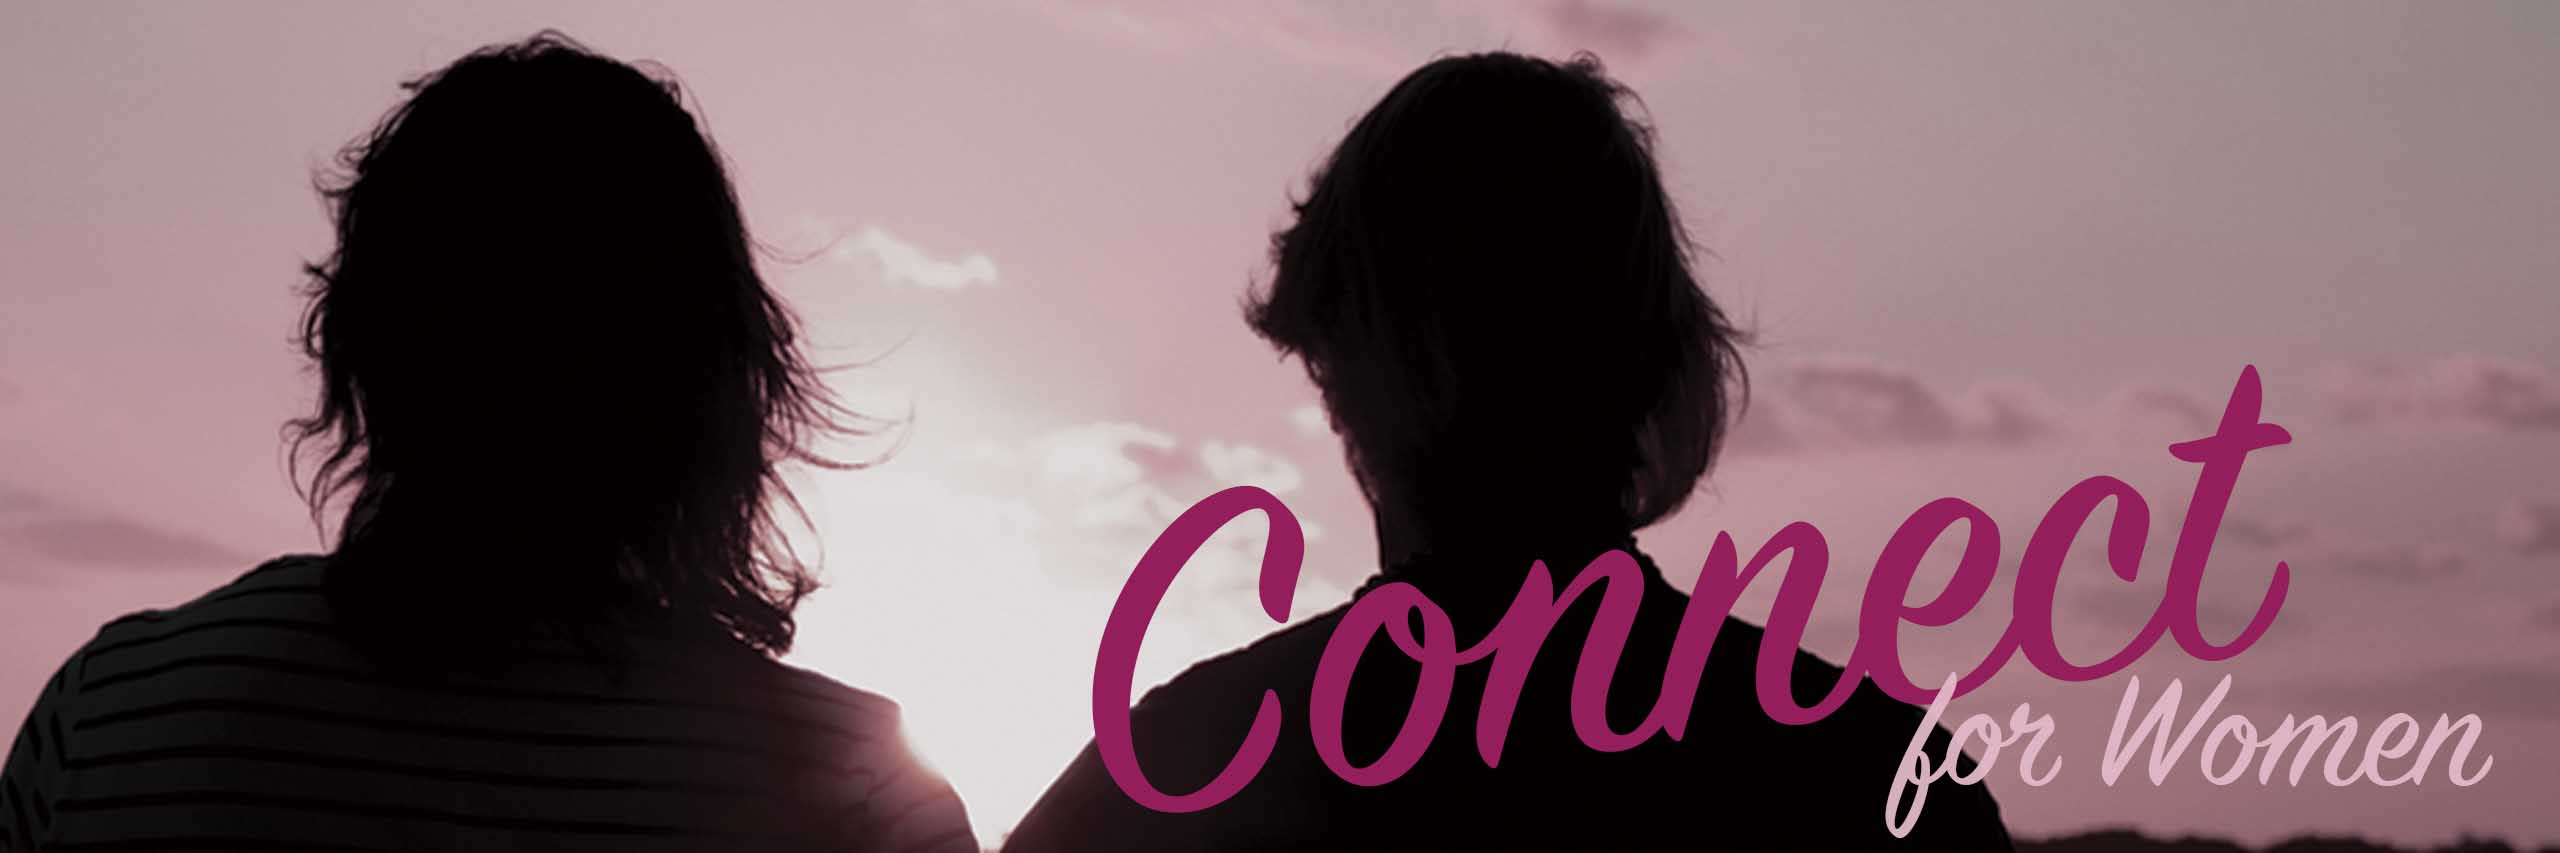 Connect Banner 1